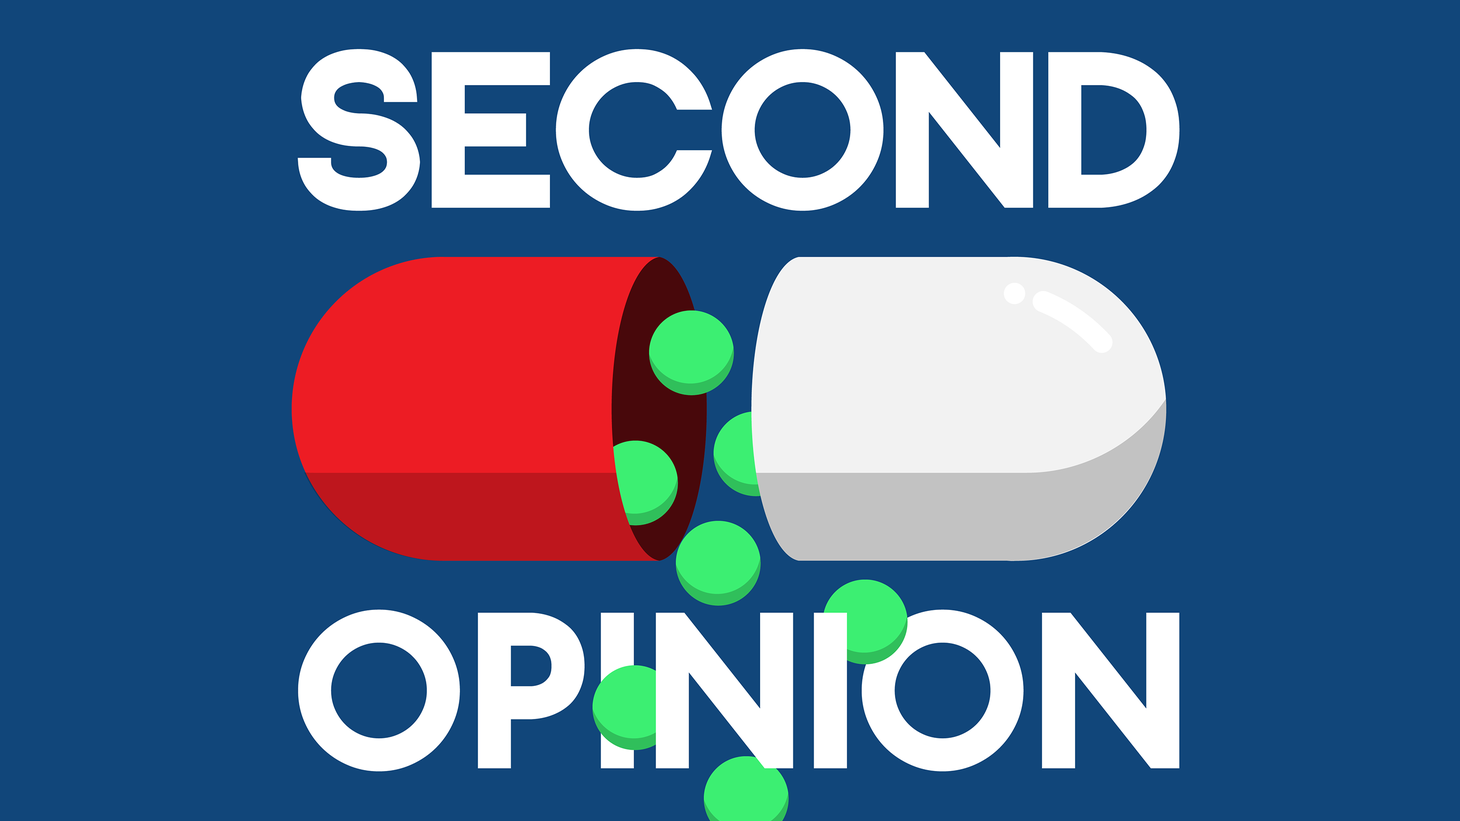 Why have drug prices increased?